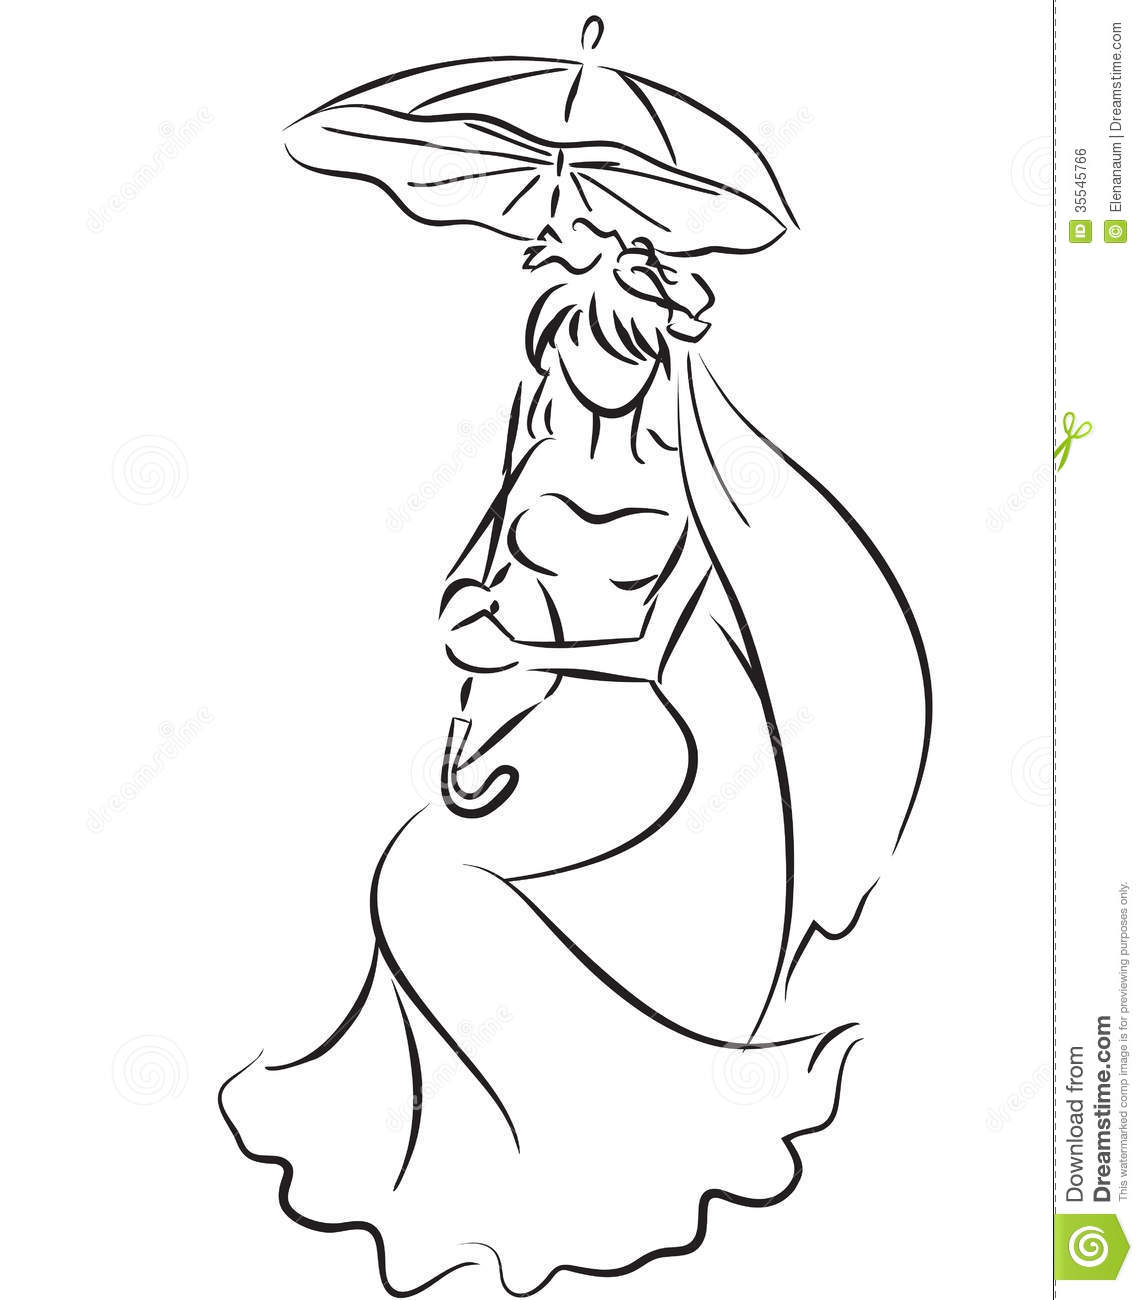 Sitting young girl with umbrella wedding theme bride monochrome